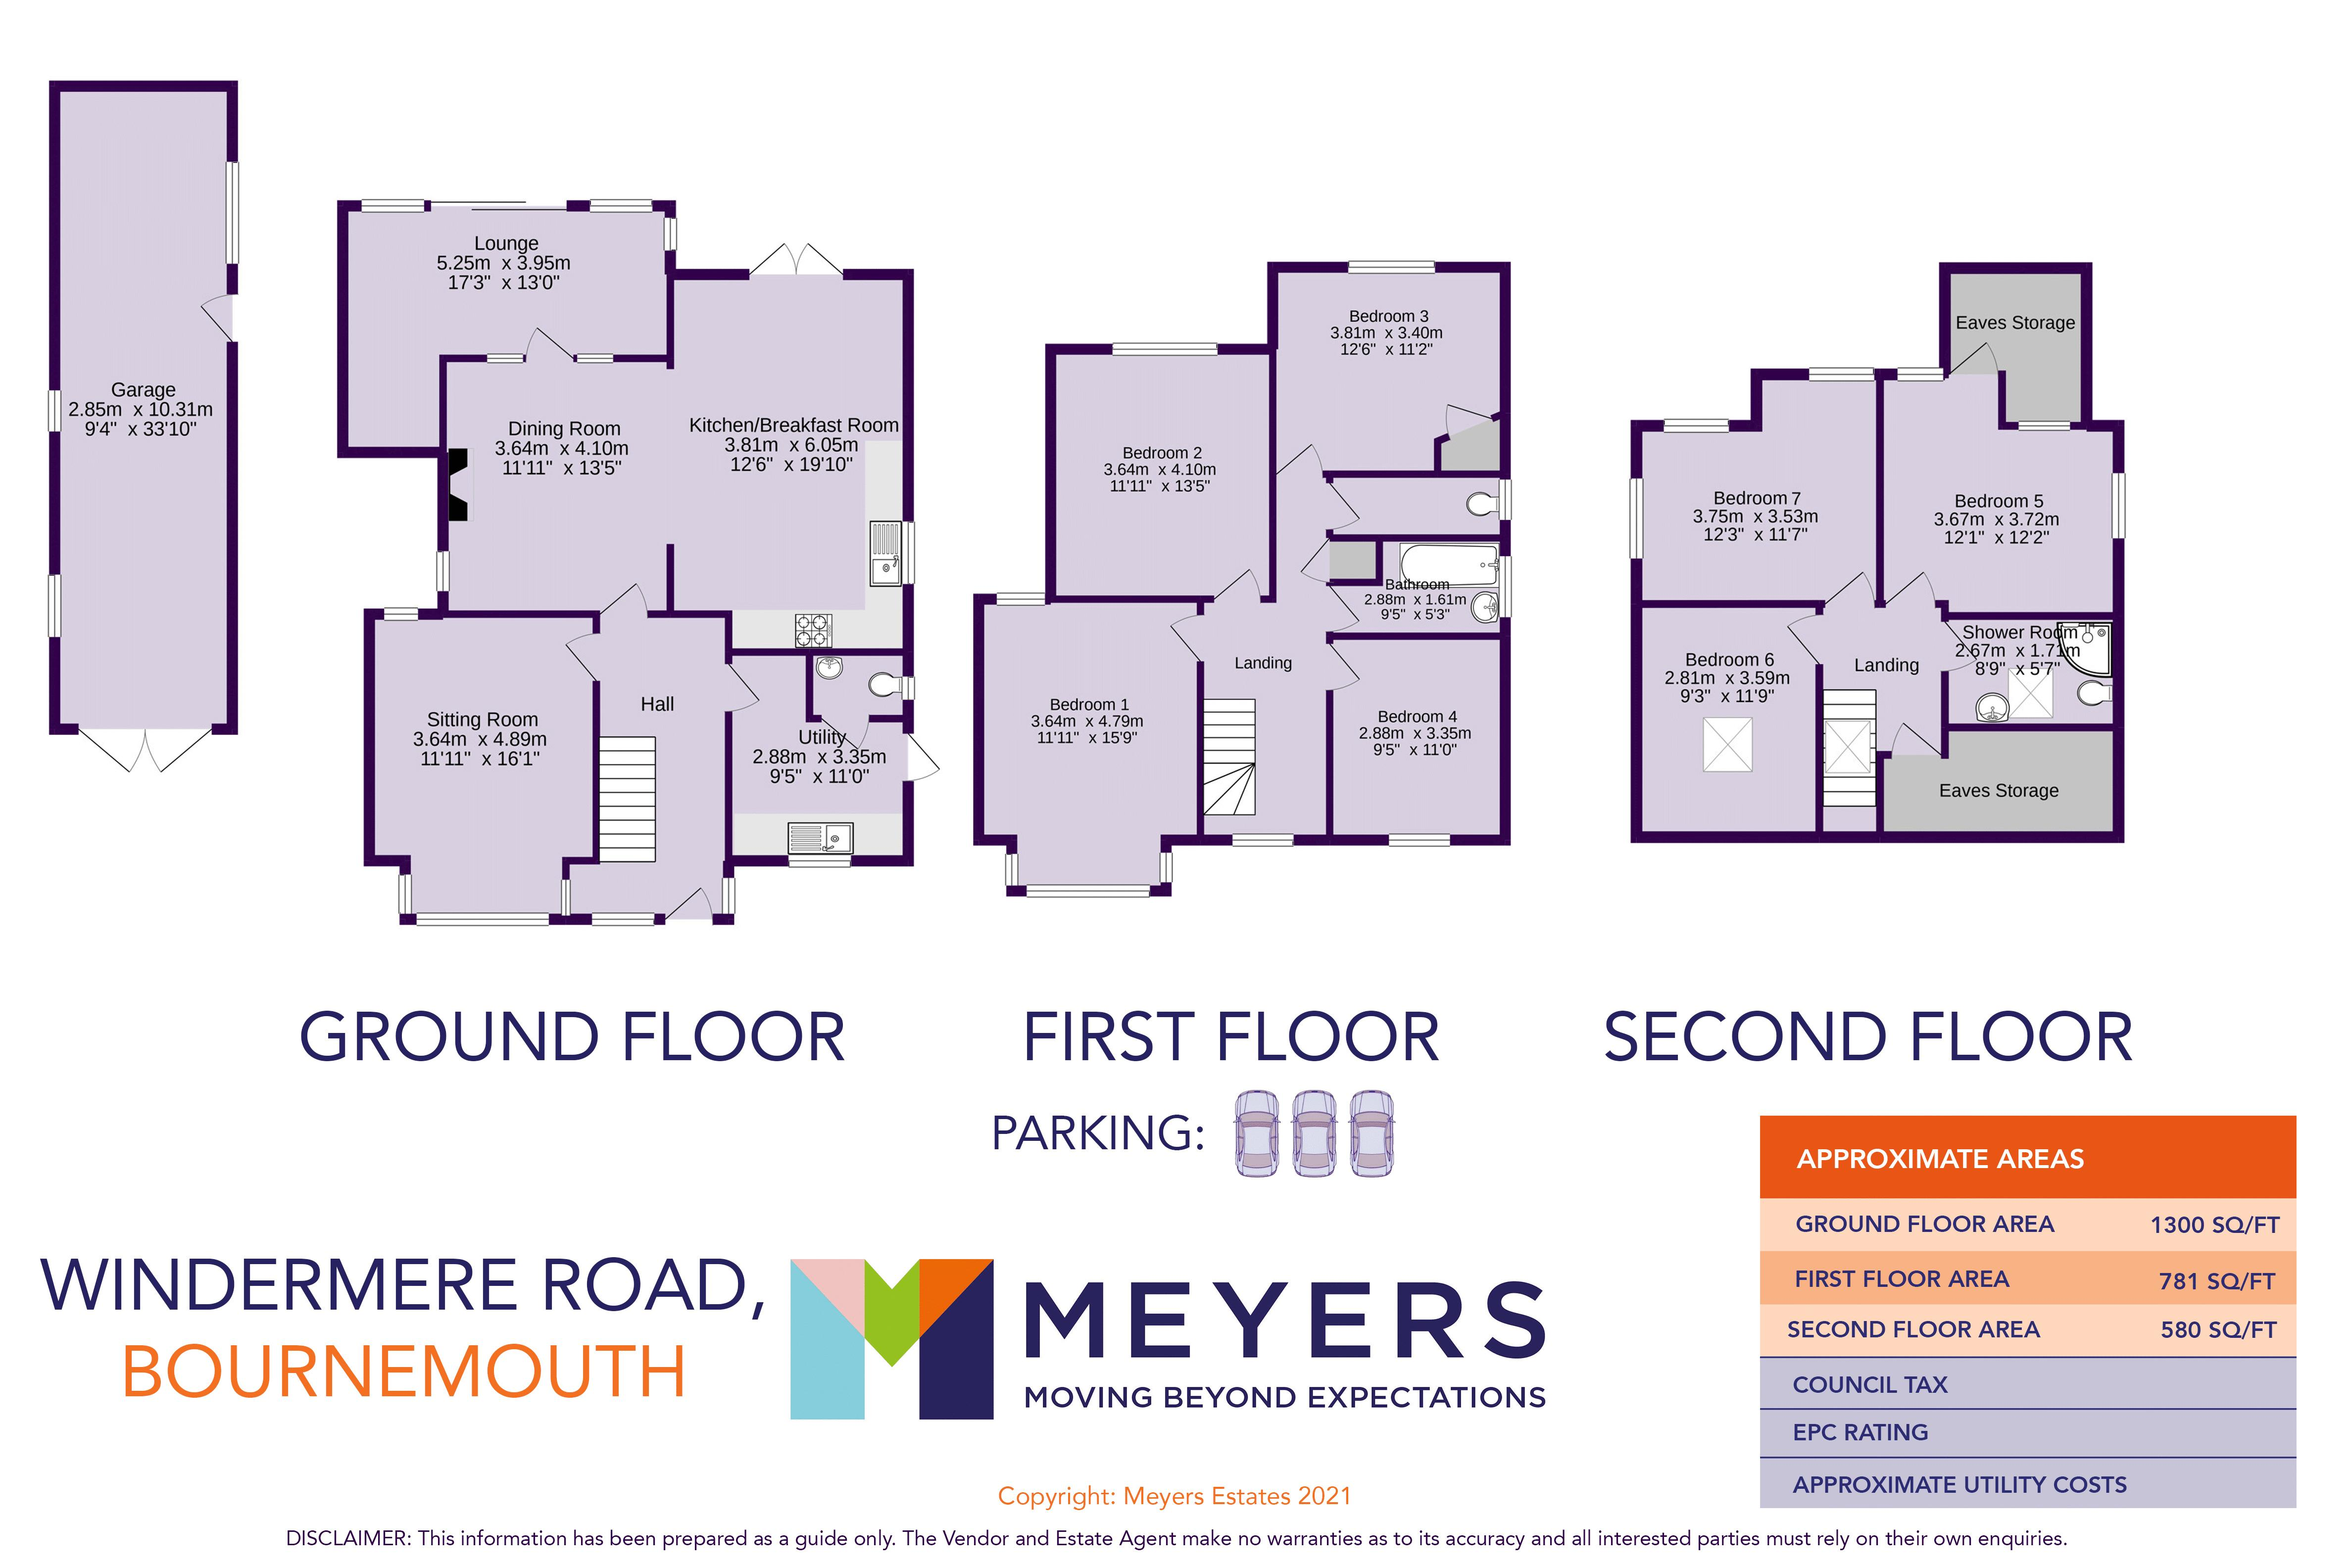 Windermere Road, Bournemouth, BH3 7LF